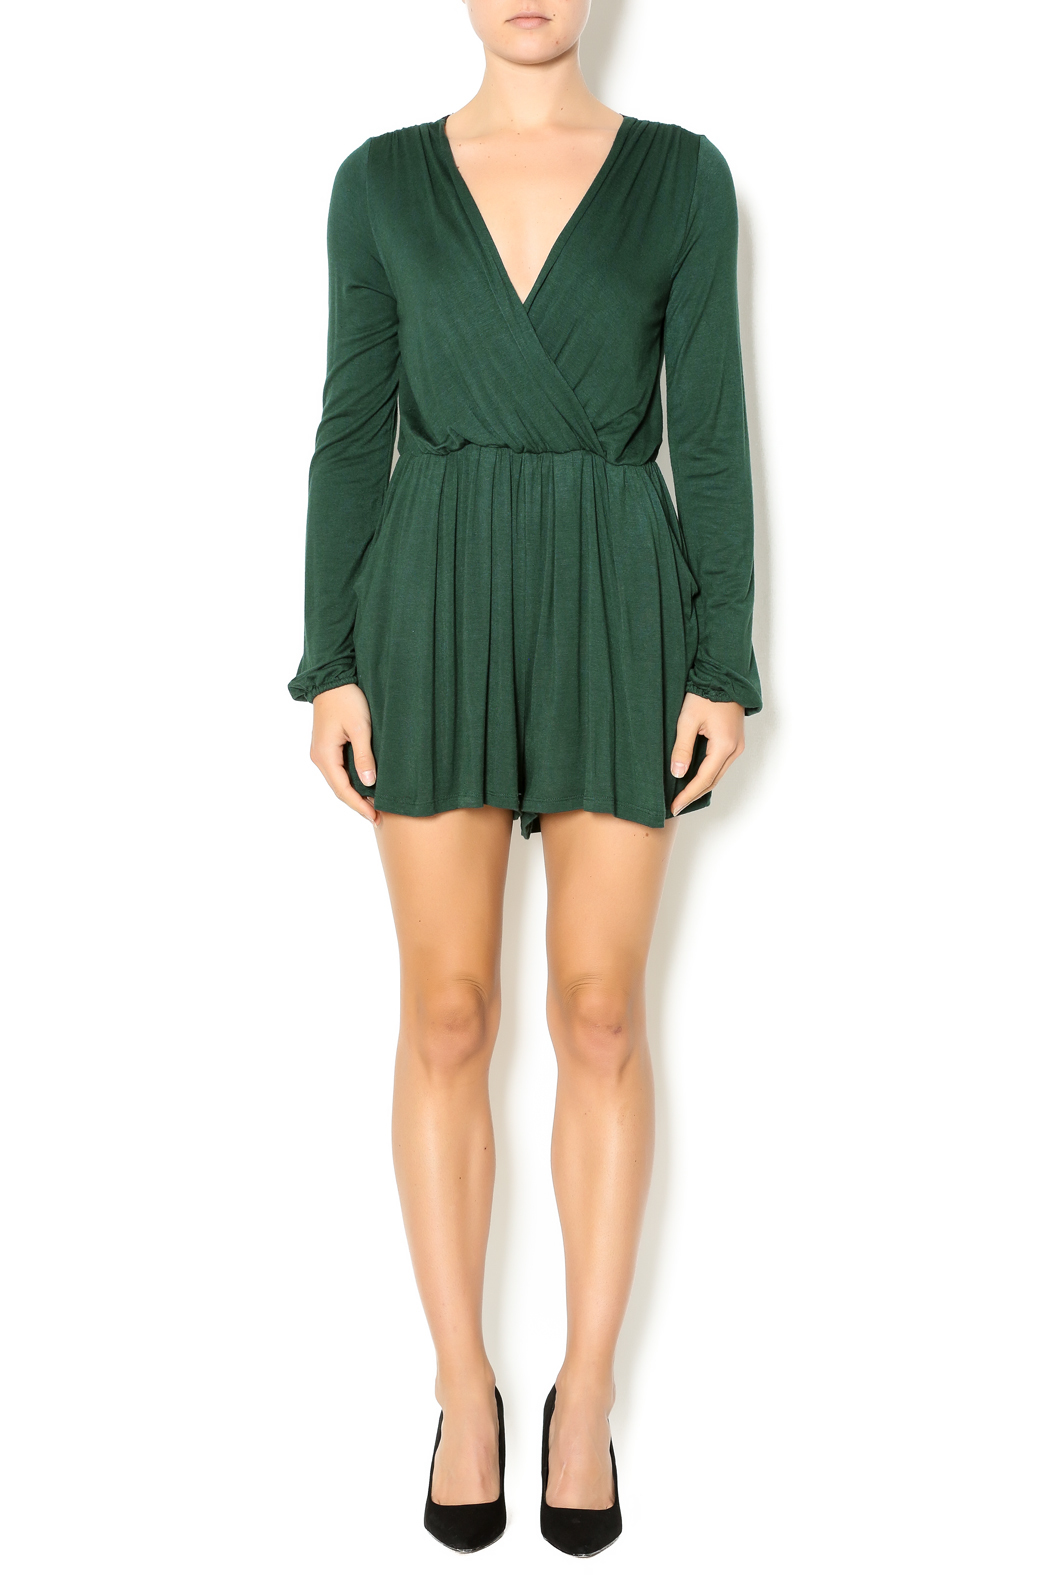 Double Zero Hunter Green Romper - Front Full Image